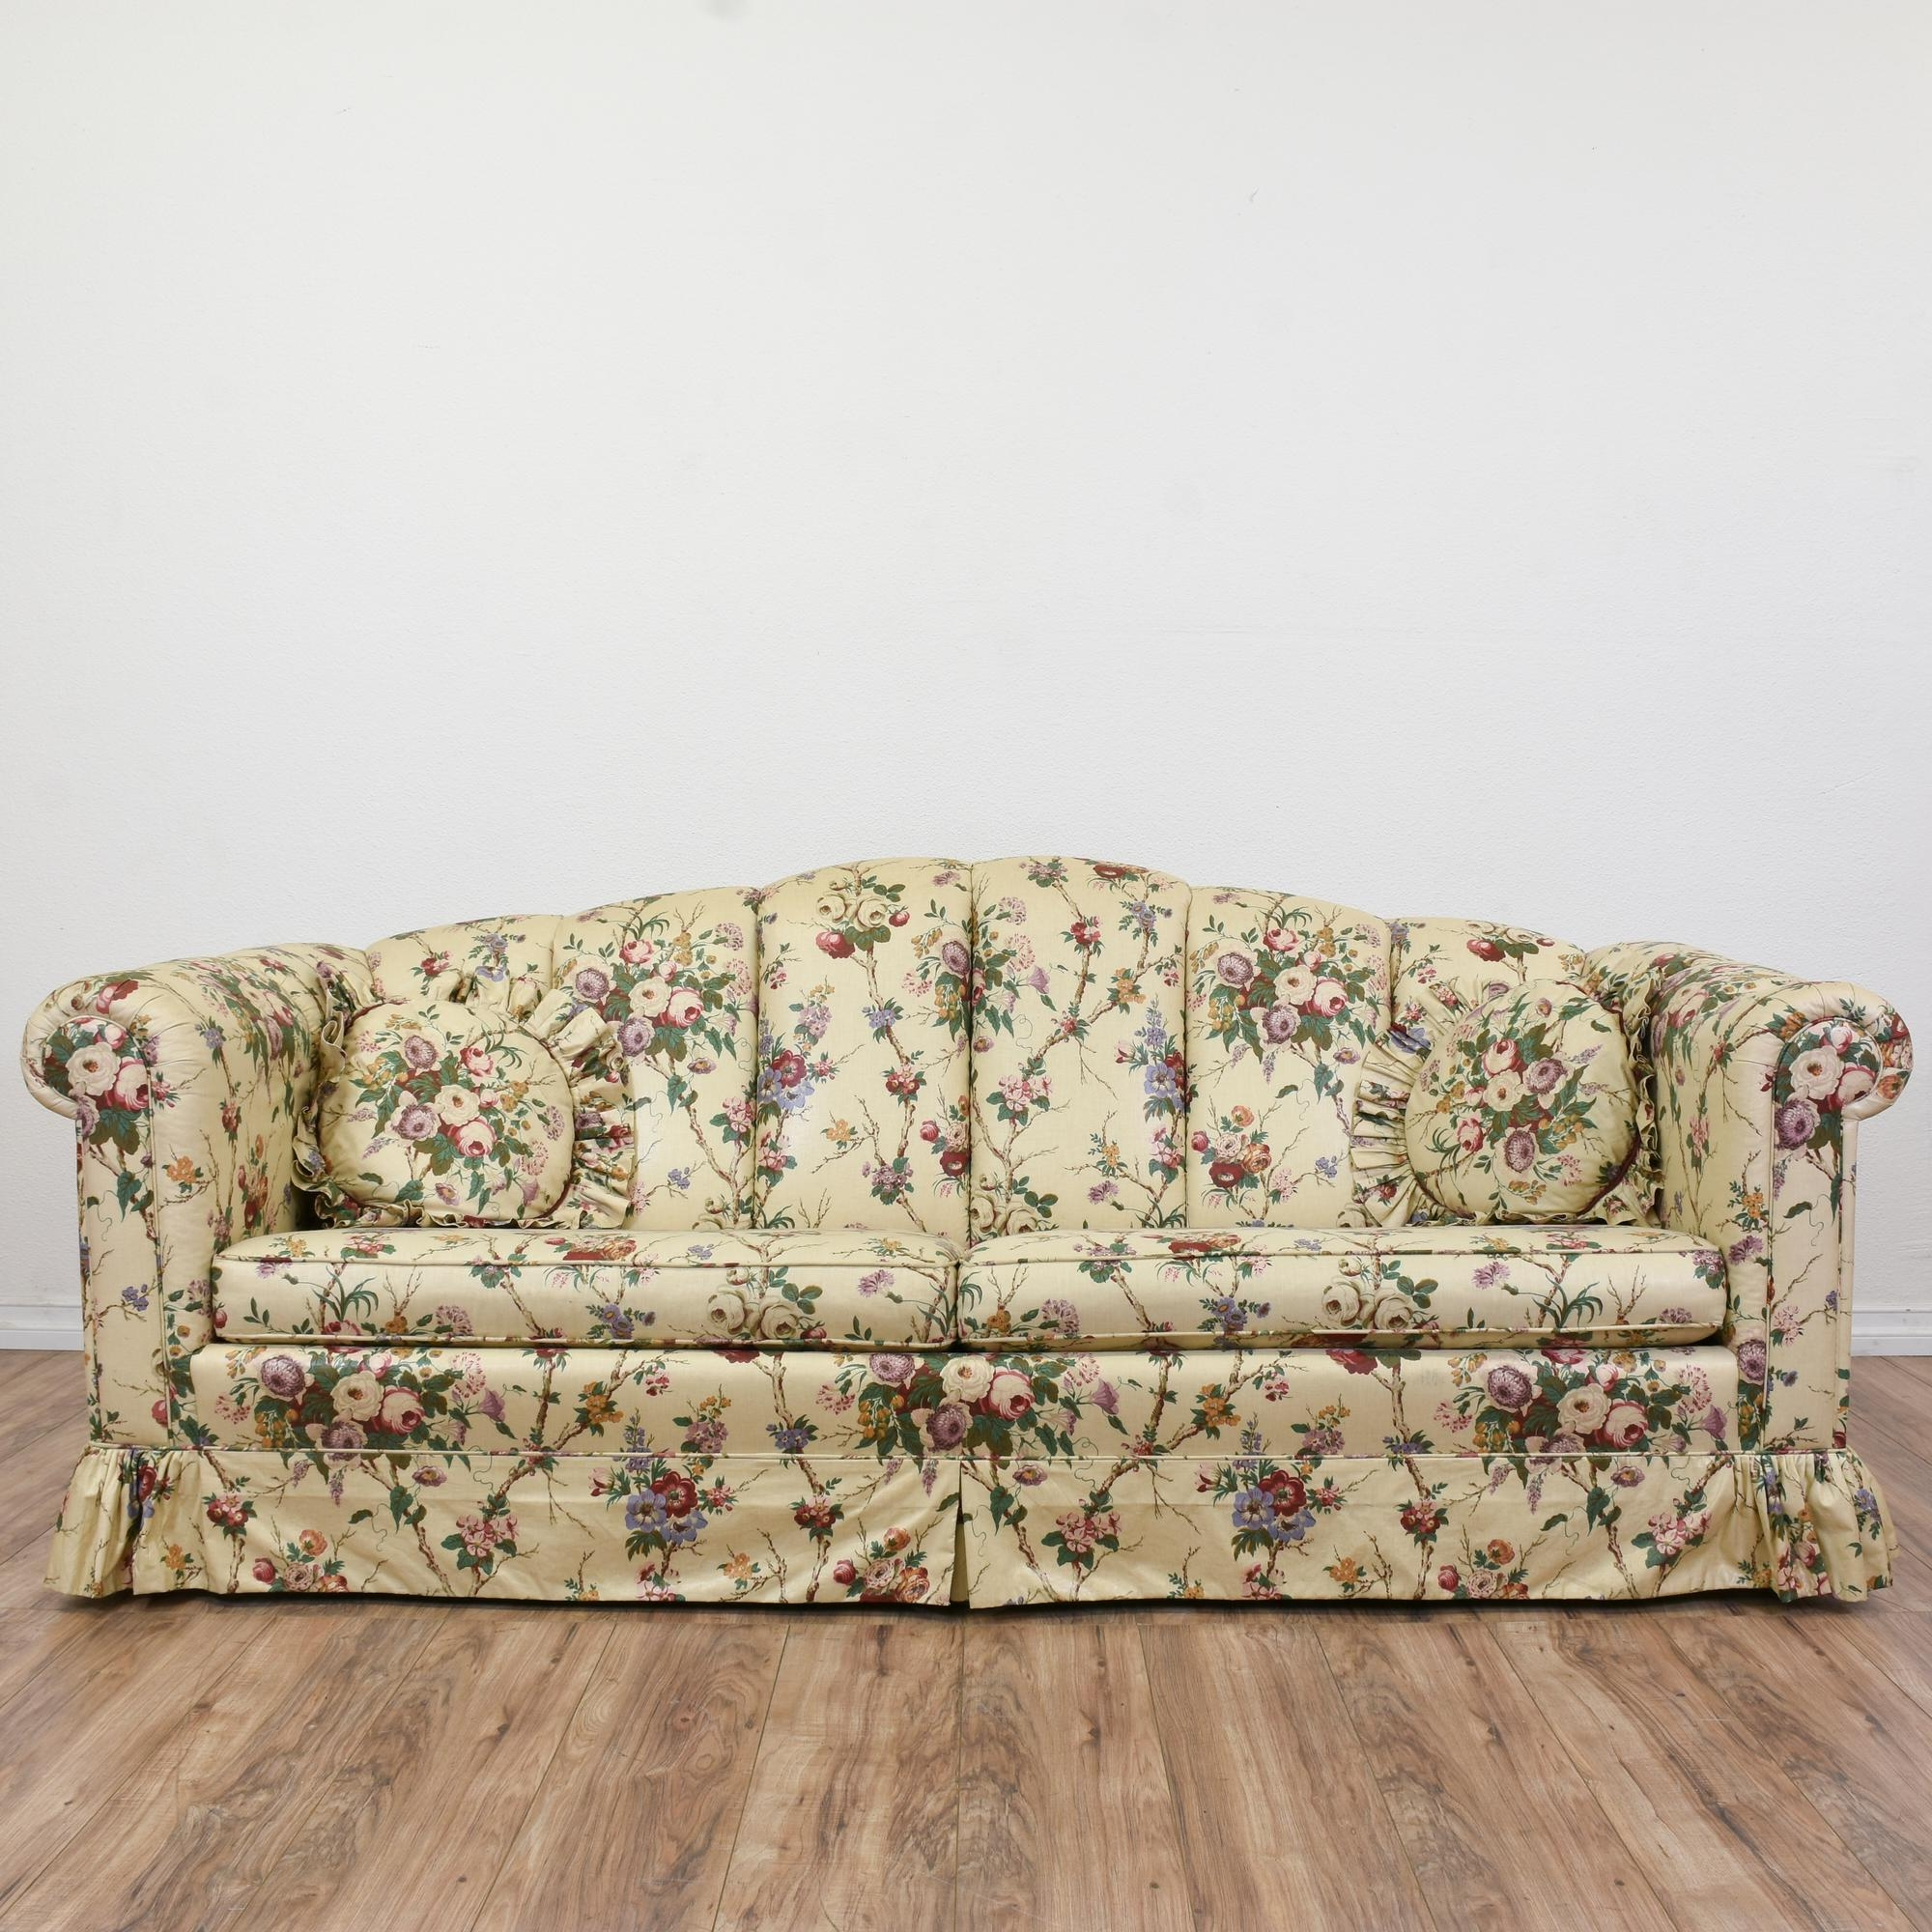 Floral Liberty Chintz Print Sofa Long Sofa Country Sofas And With Regard To Chintz Floral Sofas (Image 7 of 15)